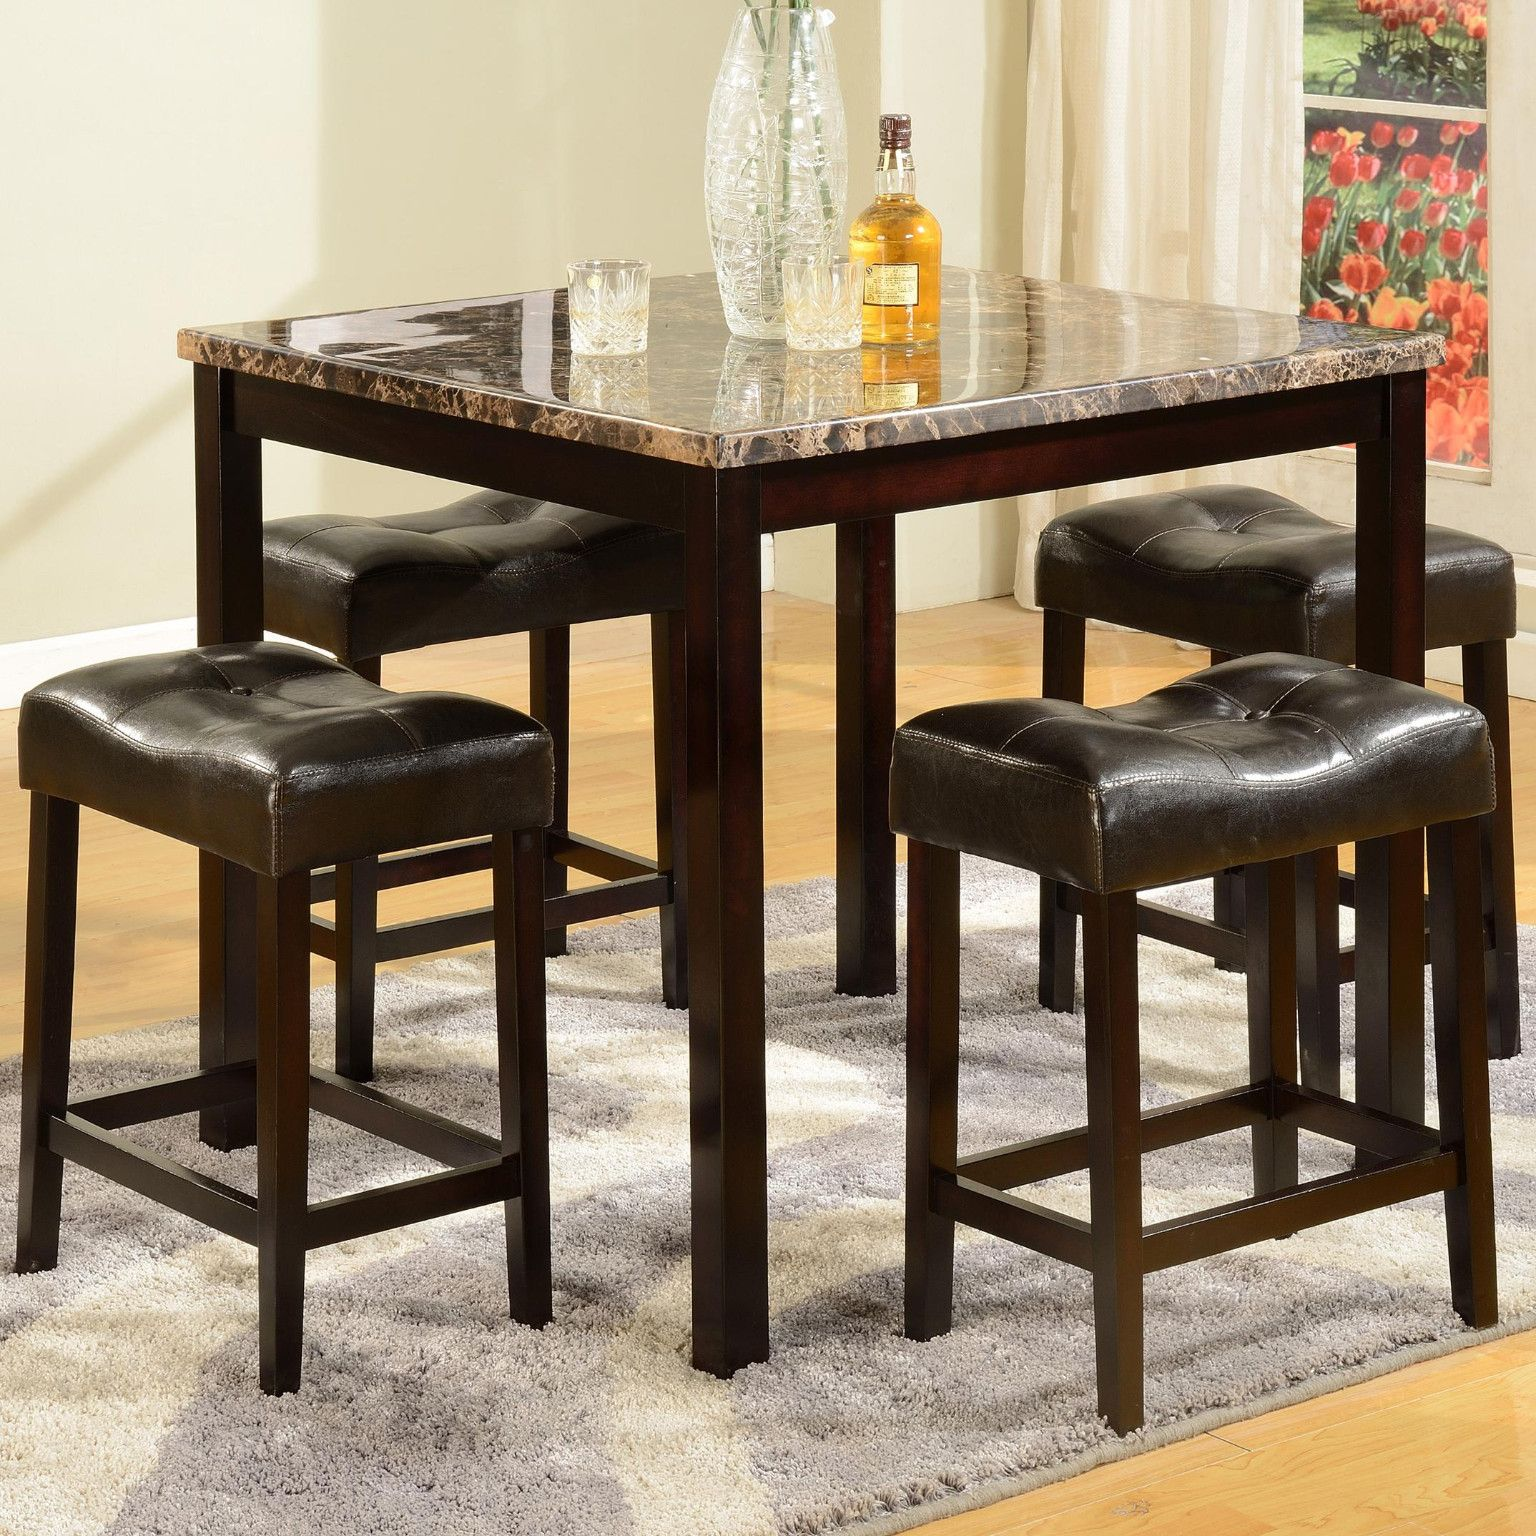 Kinsey Marble Finish Counter Height Table And 4 Bar Stools 29900 36 X